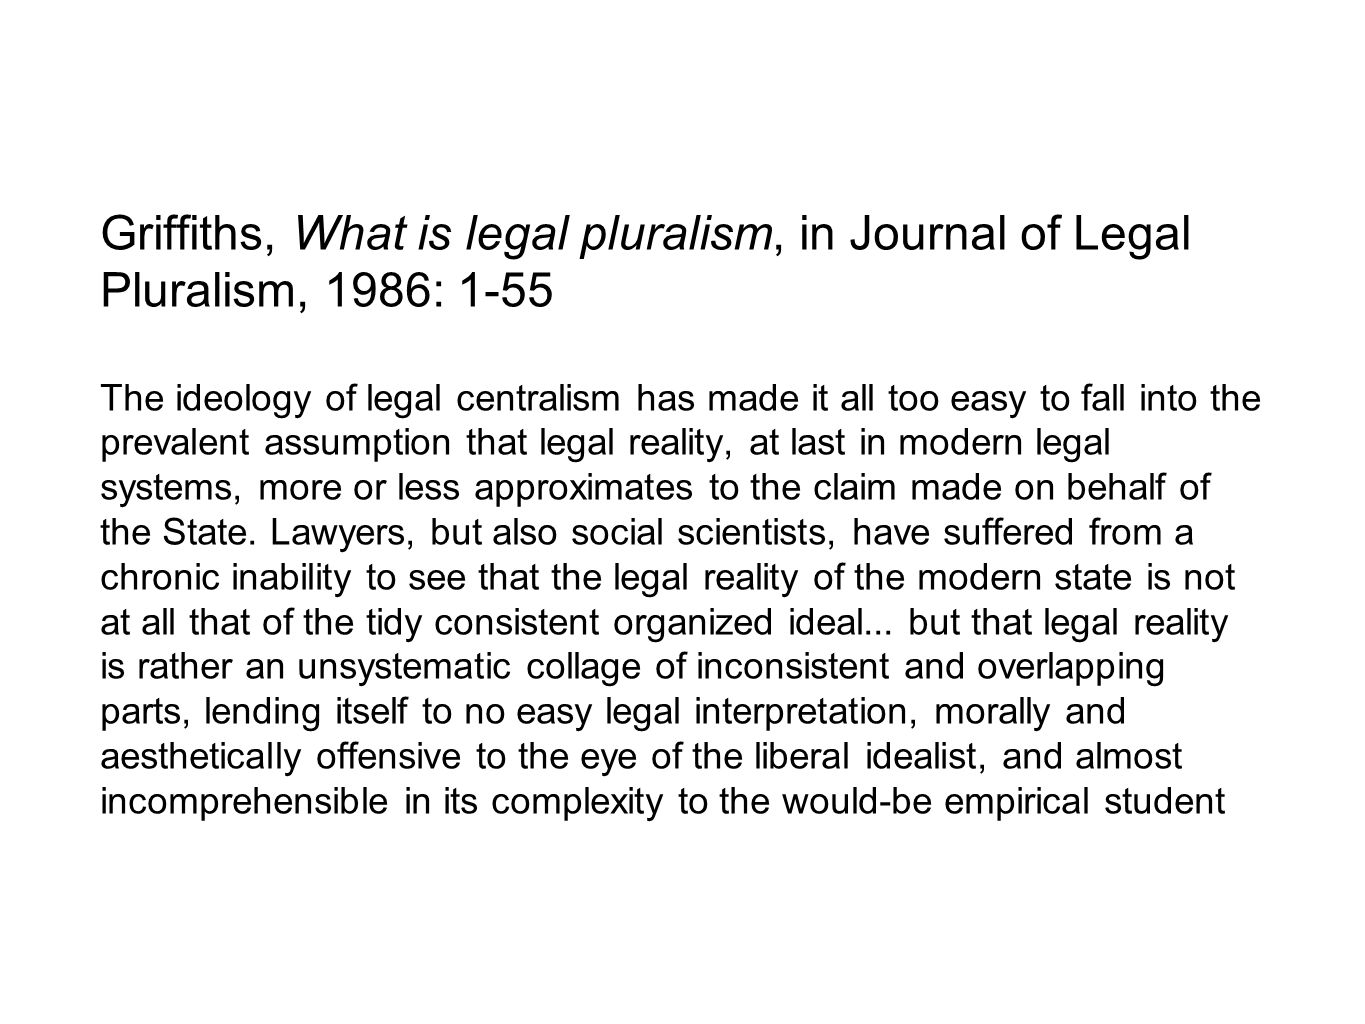 Griffiths, What is legal pluralism, in Journal of Legal Pluralism, 1986: 1-55